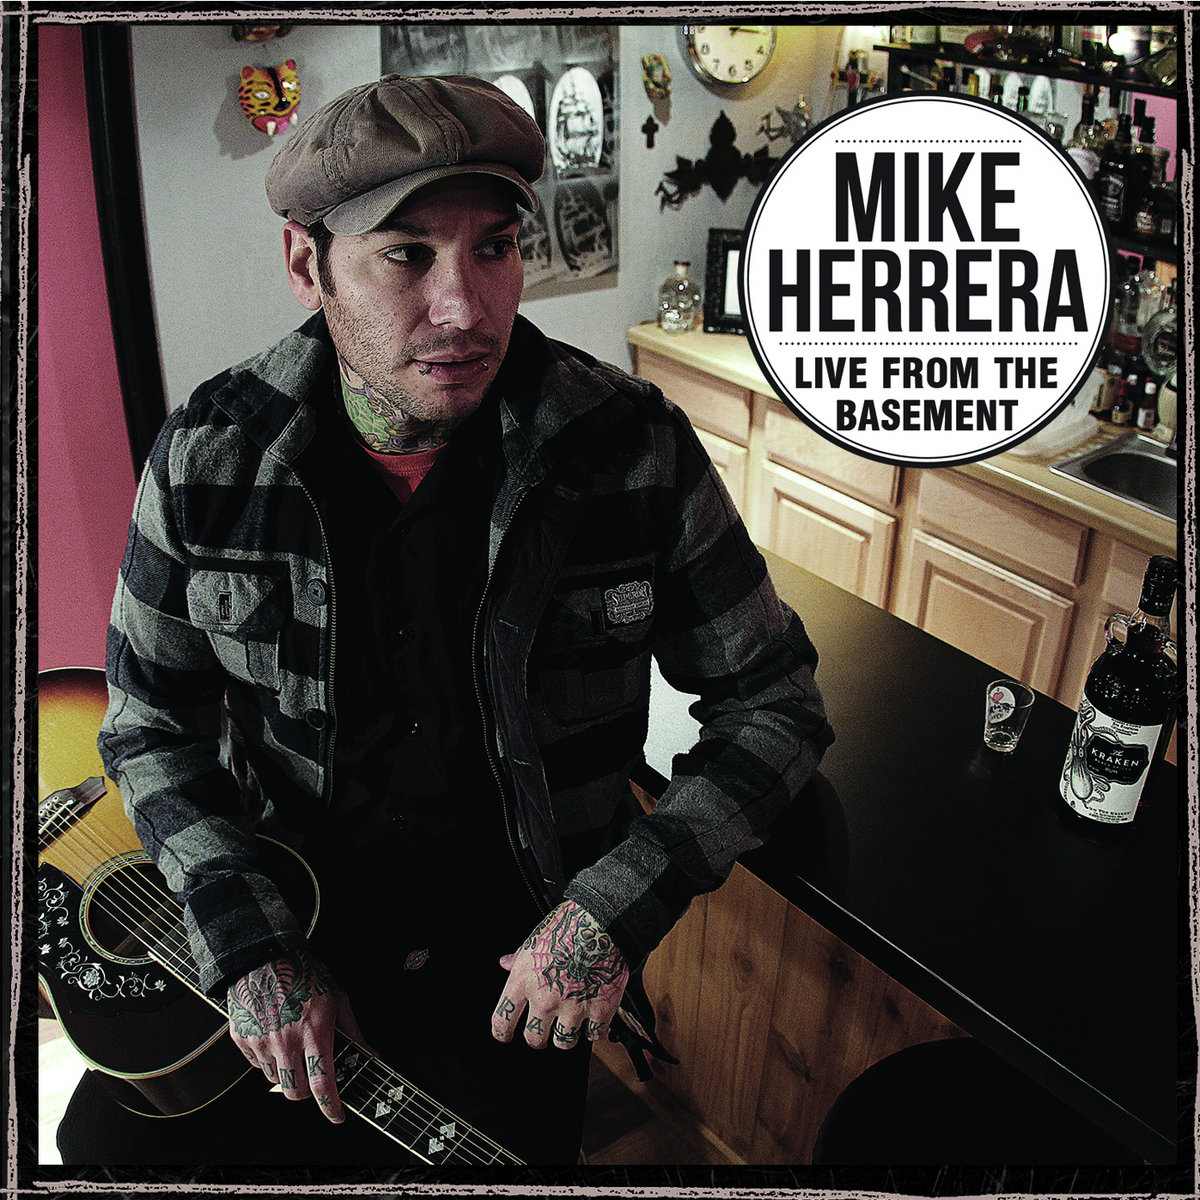 Great download mike herrera live from the basement 1200 x 1200 · 780 kB · jpeg